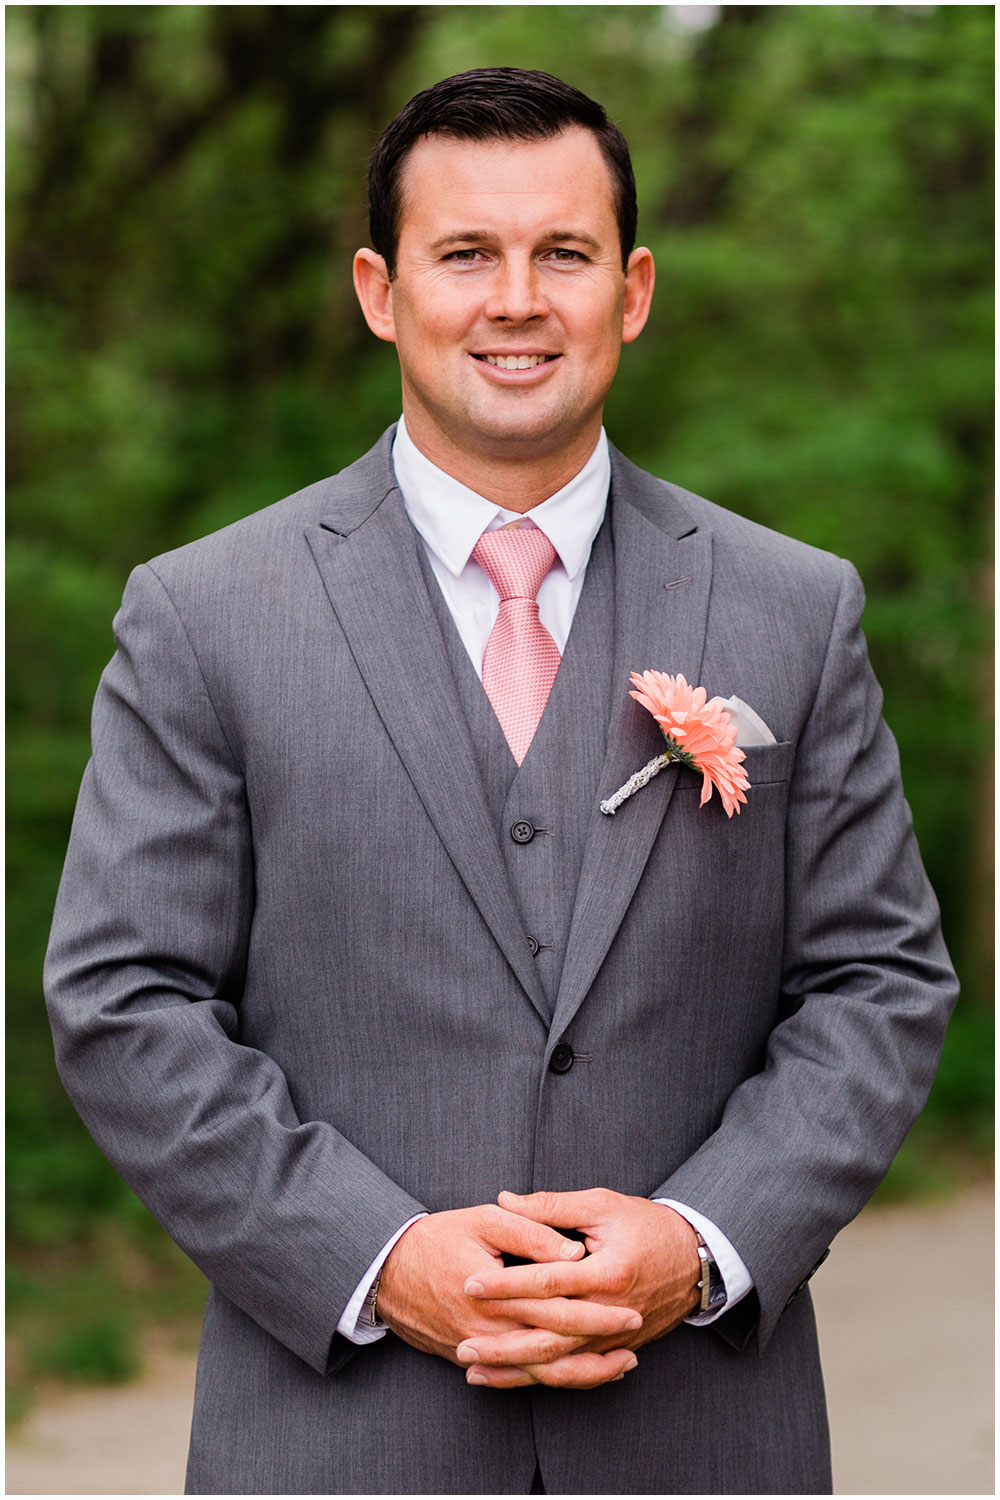 The Andrea Marie Groom - • He hails from a line of great men and surrounds himself with similar great friends.• He loves to surprise his bride whether it's a gift or thoughtful gesture.• He takes part in the wedding planning process because he considers it their day together.• He is also compassionate, grateful, generous and kind.• He understands and values the importance of the wedding photographs that will be captured and knows that it will be part of their legacy.• He appreciates tradition and knows that his influence in their new family together will inspire respect, gratitude and greatness.• He honors and appreciates his parents.• He values who his bride is and everything she will be.• He feels deeply about a great cause, truthful, stands for what's right, and always strives for himself and others to be better.• He may not always show his feelings, but the times that he does, it's very significant.• He considers himself a gentleman, and will open the door for her or pull out her chair.